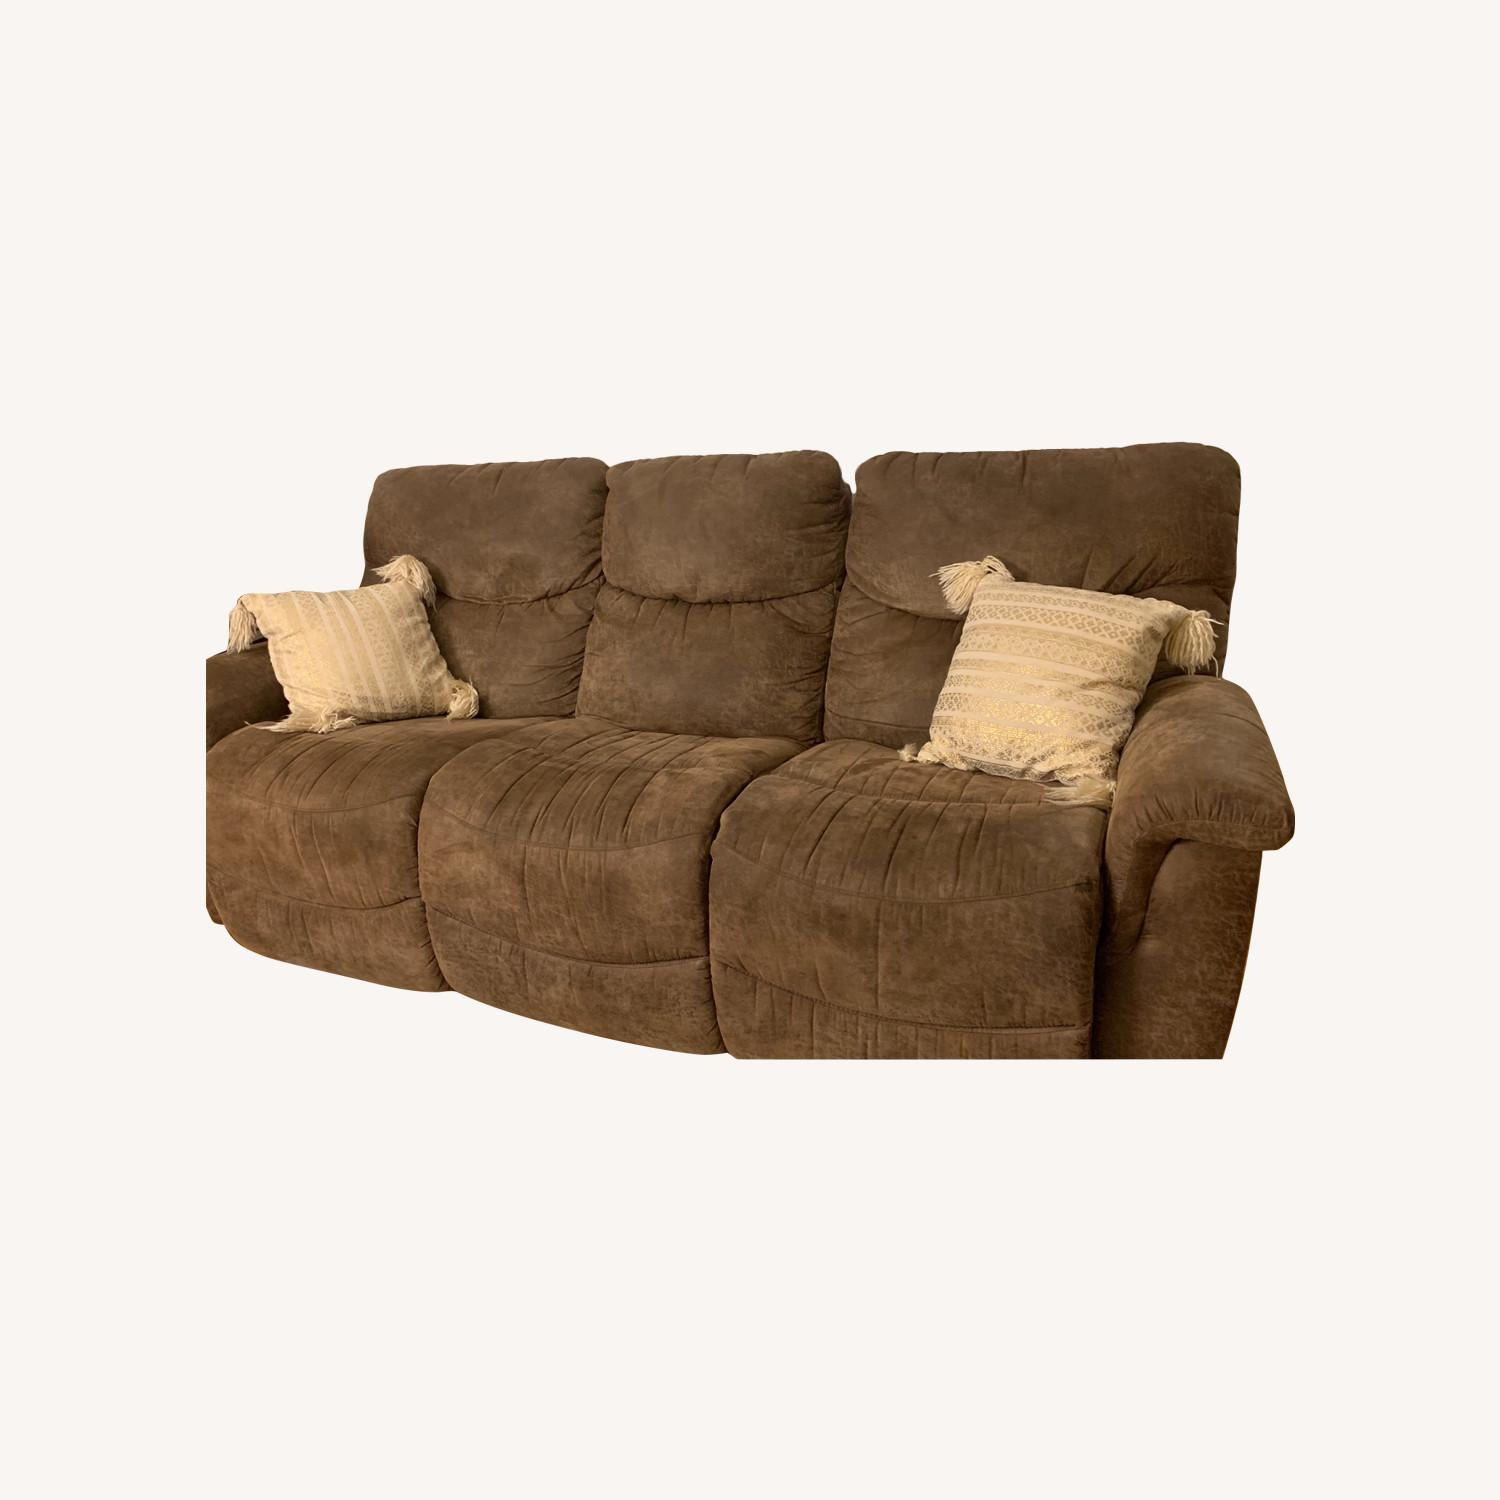 La-Z-Boy Ddual Reclining Couch - brown - image-0